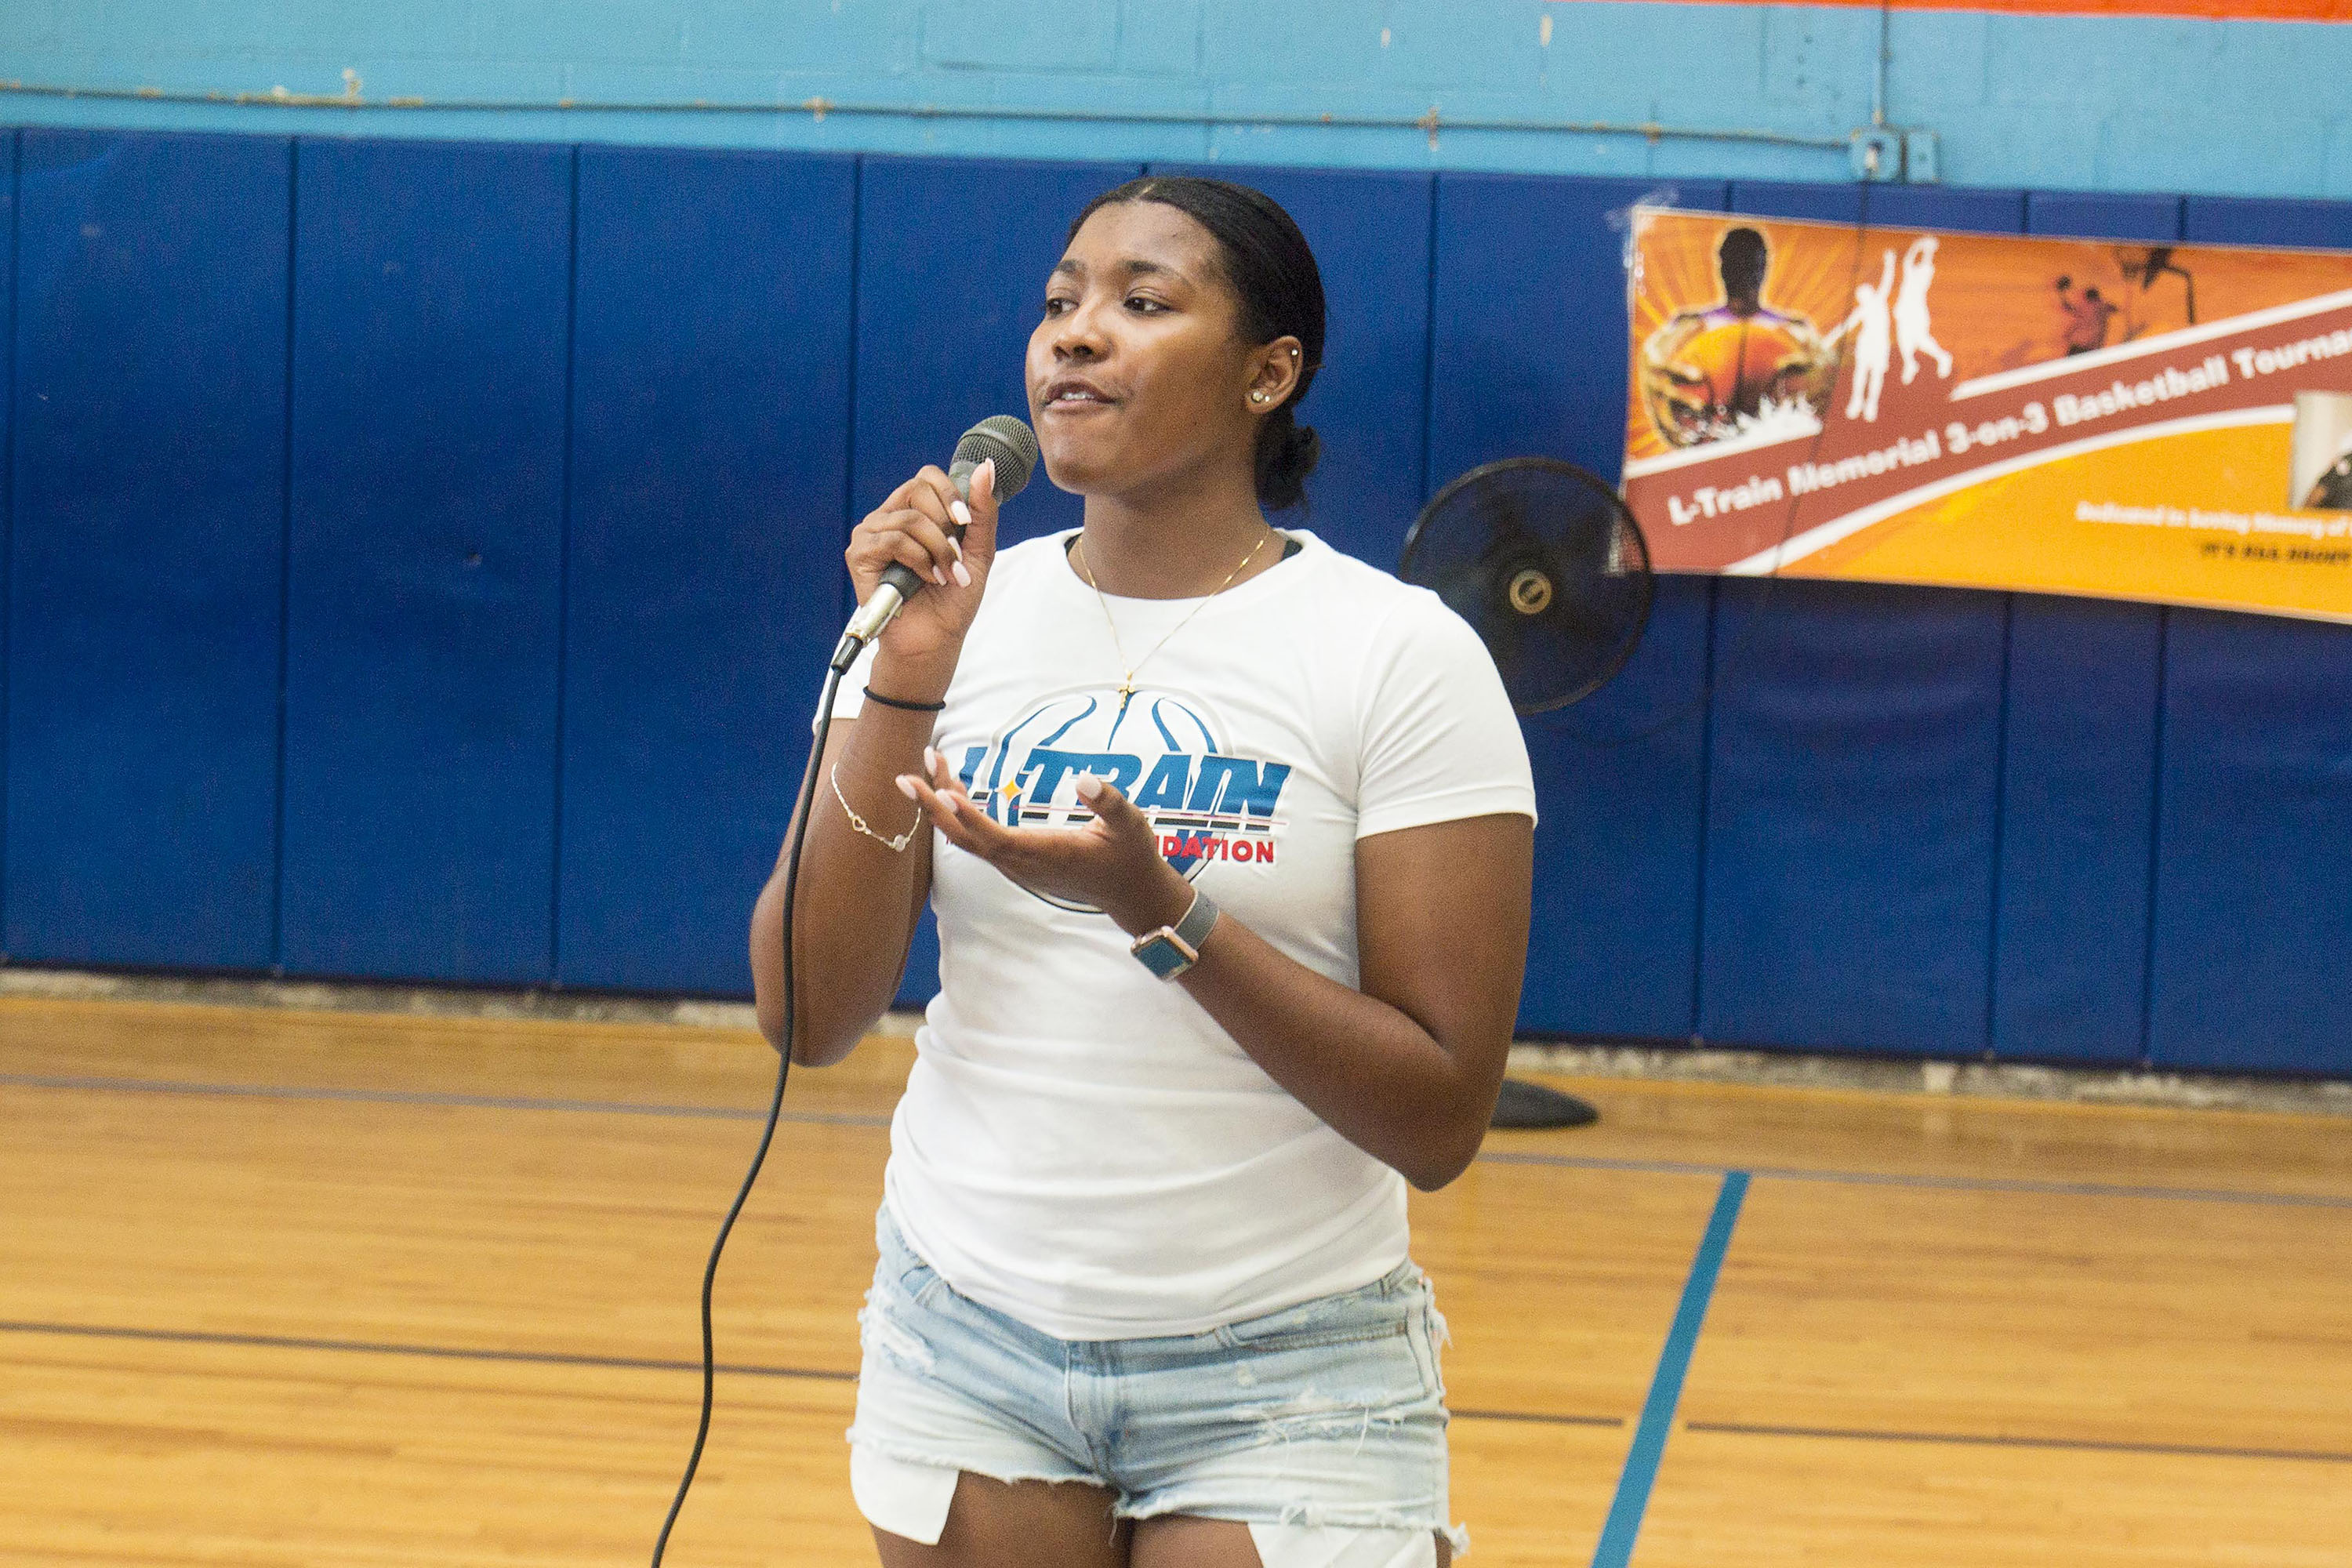 L-Train Memorial Foundation - Annual 3-On-3 Tournament (Boys and Girls Club Union, NJ) 08-07-16_0196